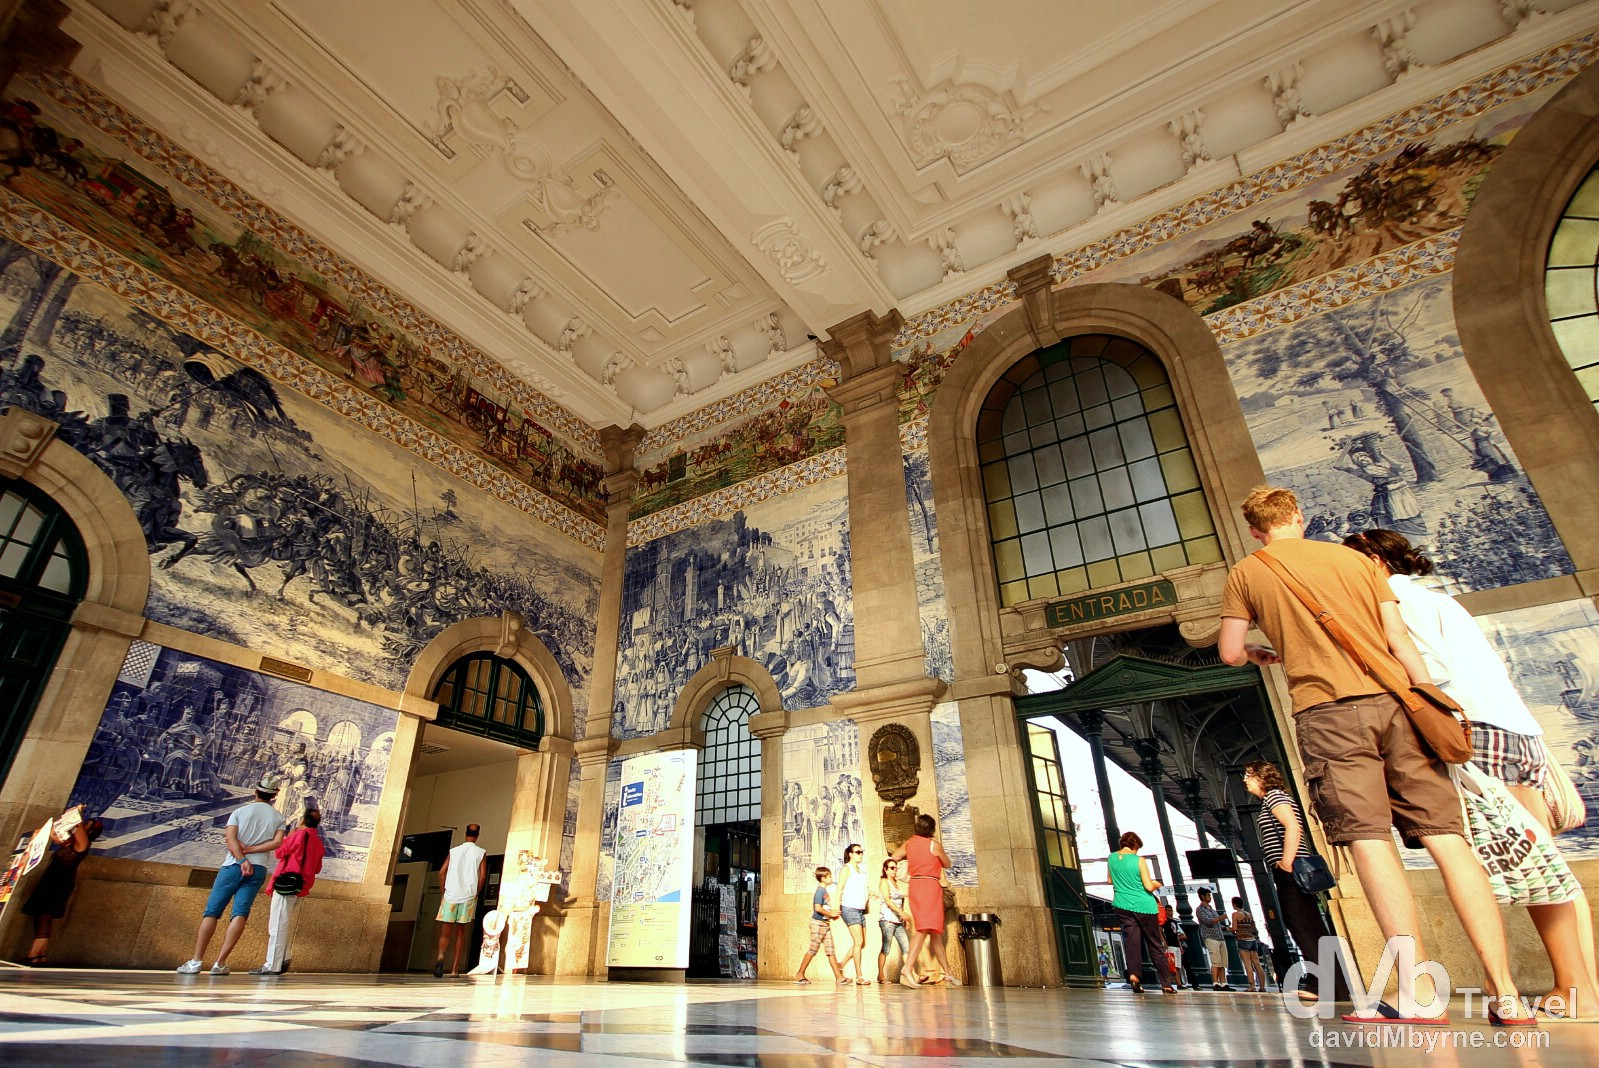 Azulejo in Sao Bento Station. Azulejo is a form of Portuguese painted ceramic tile work that has been produced without interruption for five centuries & has become a typical aspect of Portuguese culture & a major aspect of Portuguese architecture - the tiles are applied on walls, floors, ceilings & even on the streets. Ten years of work went into finishing the 20,000 tiles found here, in the vestibule of the 1916 Sao Bento train station, a tourist favourite in the city. The azulejo panels here were painted between 1905-1916 by Jorge Colaco, the most important azulejo painter of the time, & depict landscapes & important historical scenes in Portuguese history. I visited this station numerous times while in the city (it's somewhere you always seem to pass by) but, and while nurturing a fast depleting camera battery, waited until the nice light of sunset cast a warm glow in the vestibule before photographing it. Porto, Portugal. August 28th 2013.